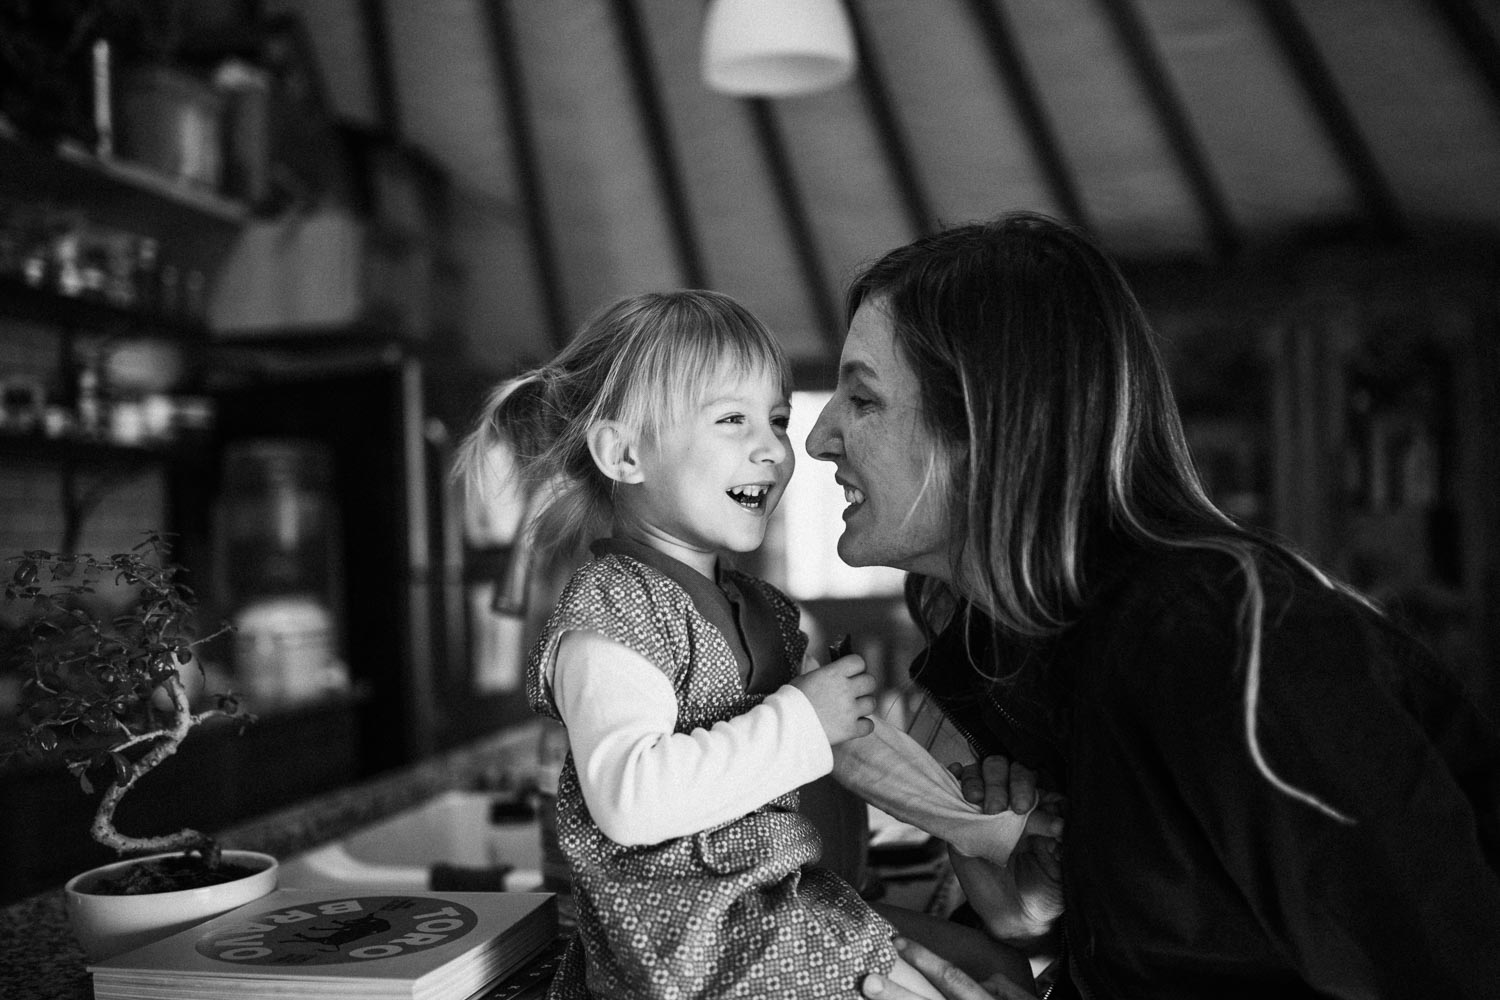 candid-black-and-white-photo-of-joyful-moment-shared-between-mother-and-child-benbow-california